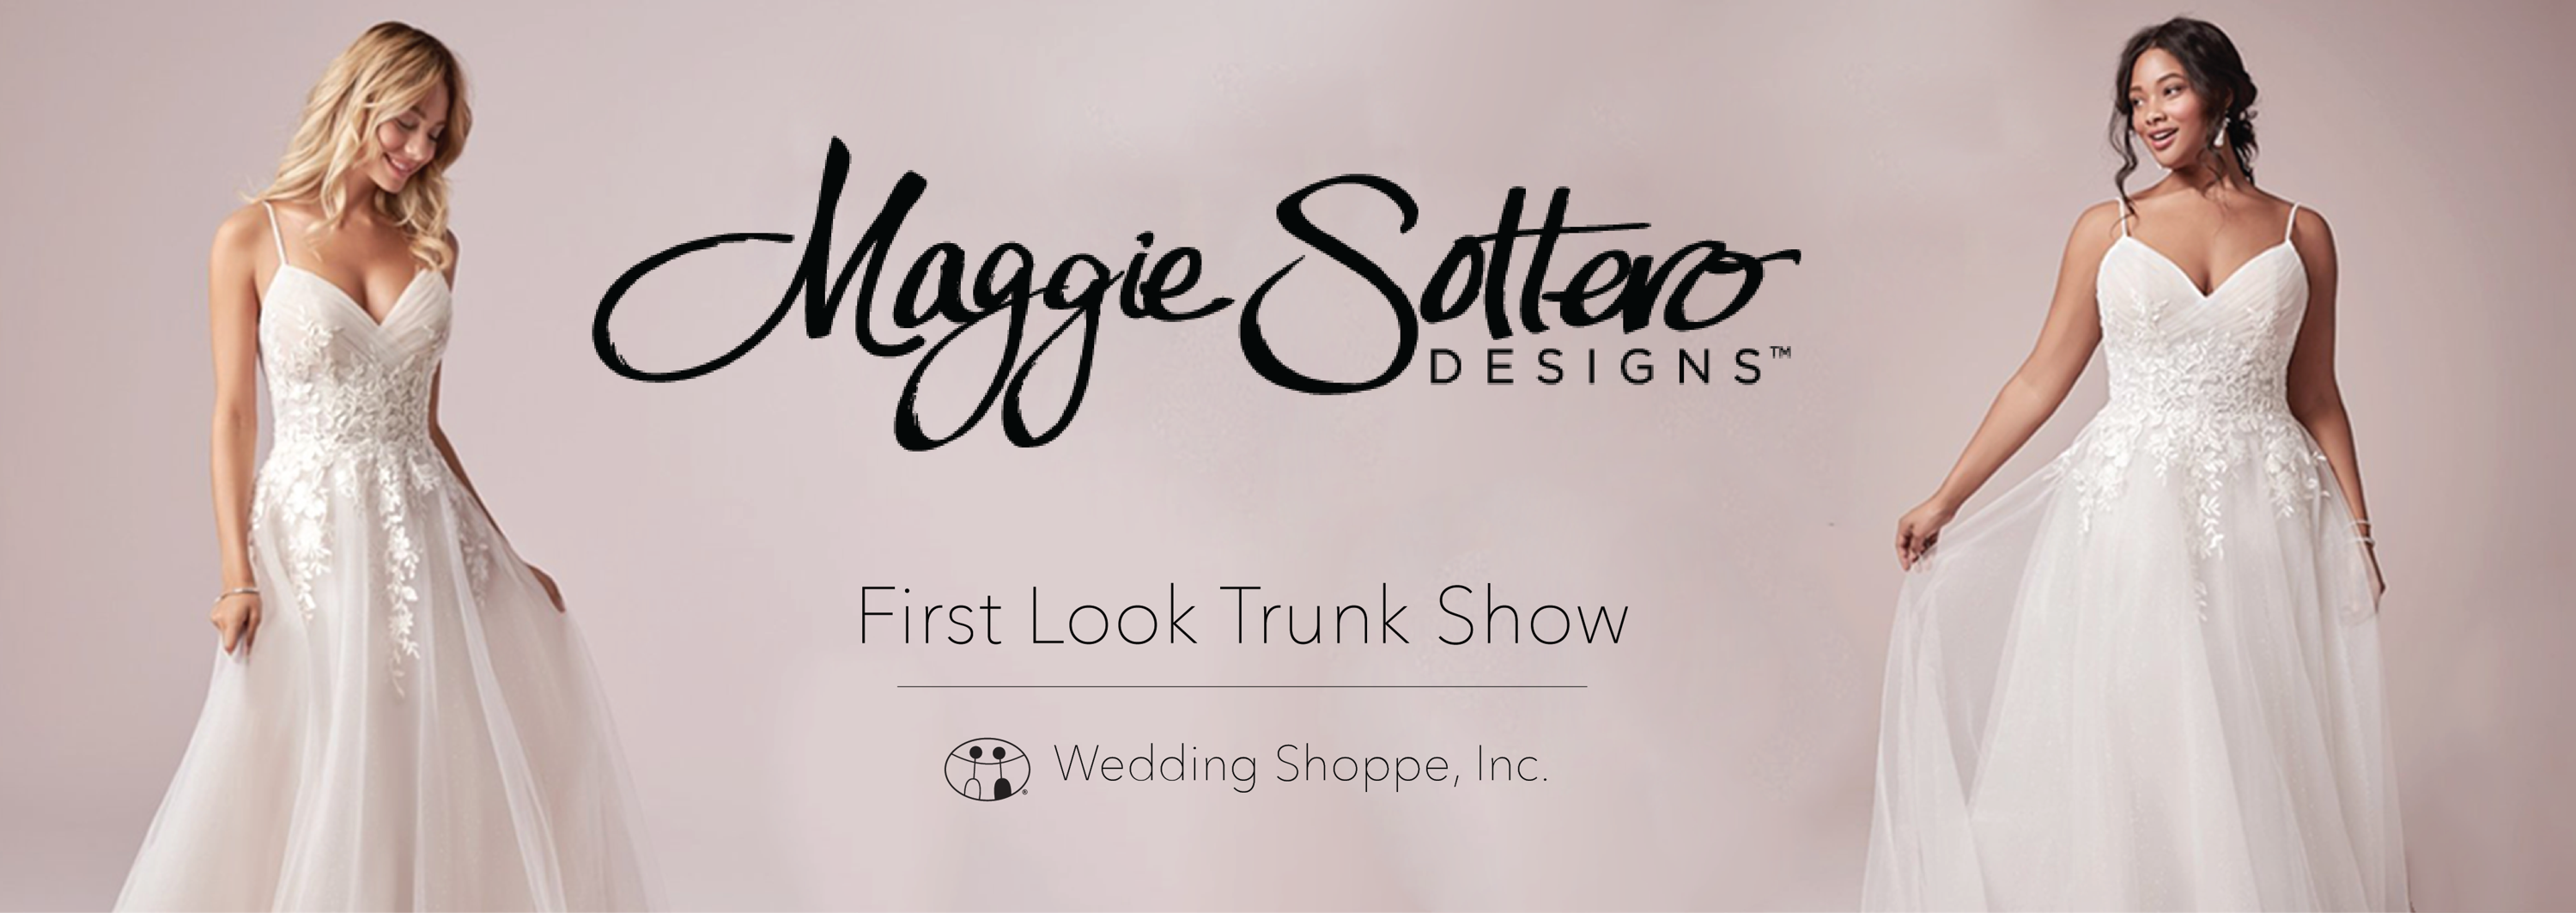 Maggie Trunk Show